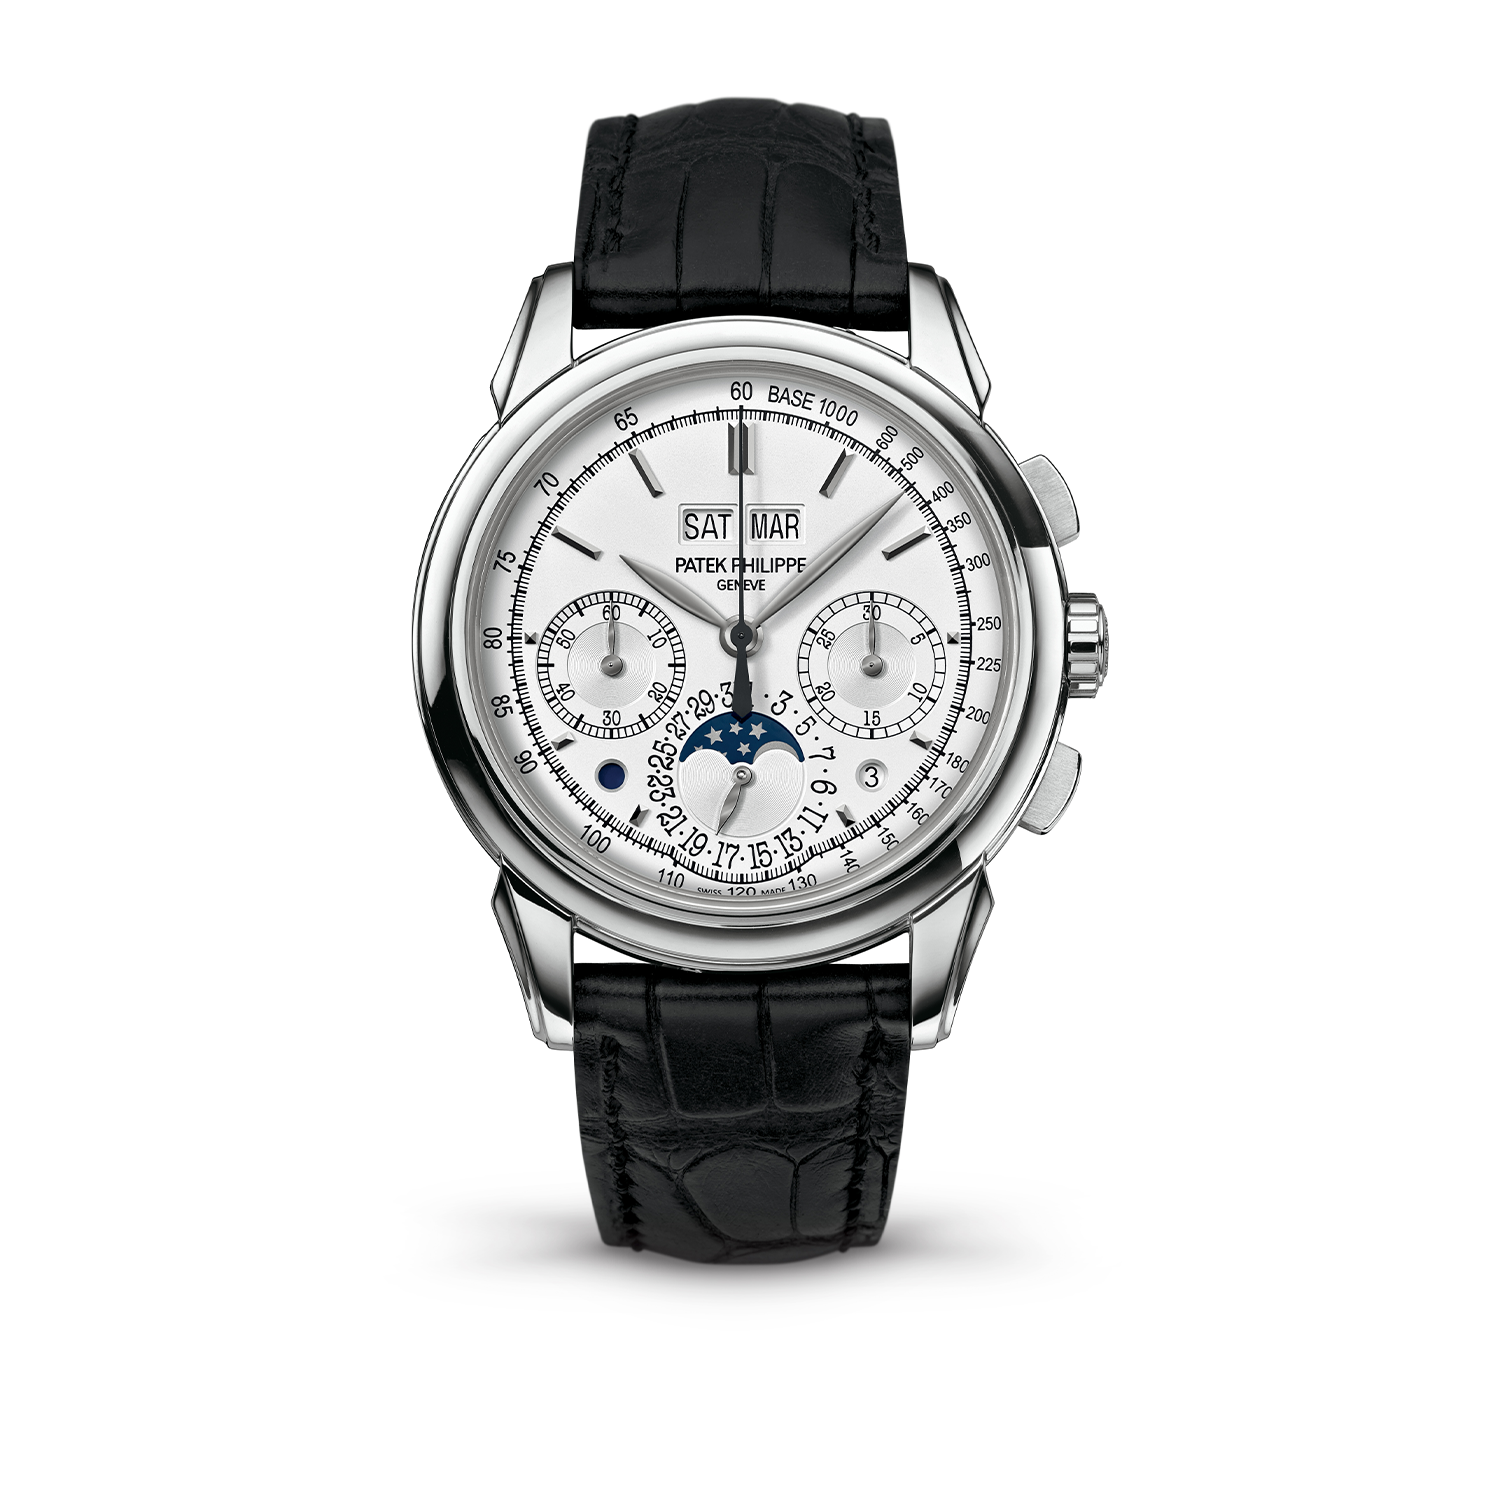 "2013 version of the Patek Philippe ref. 5270 with the infamous ""chin"" on the watch dial"